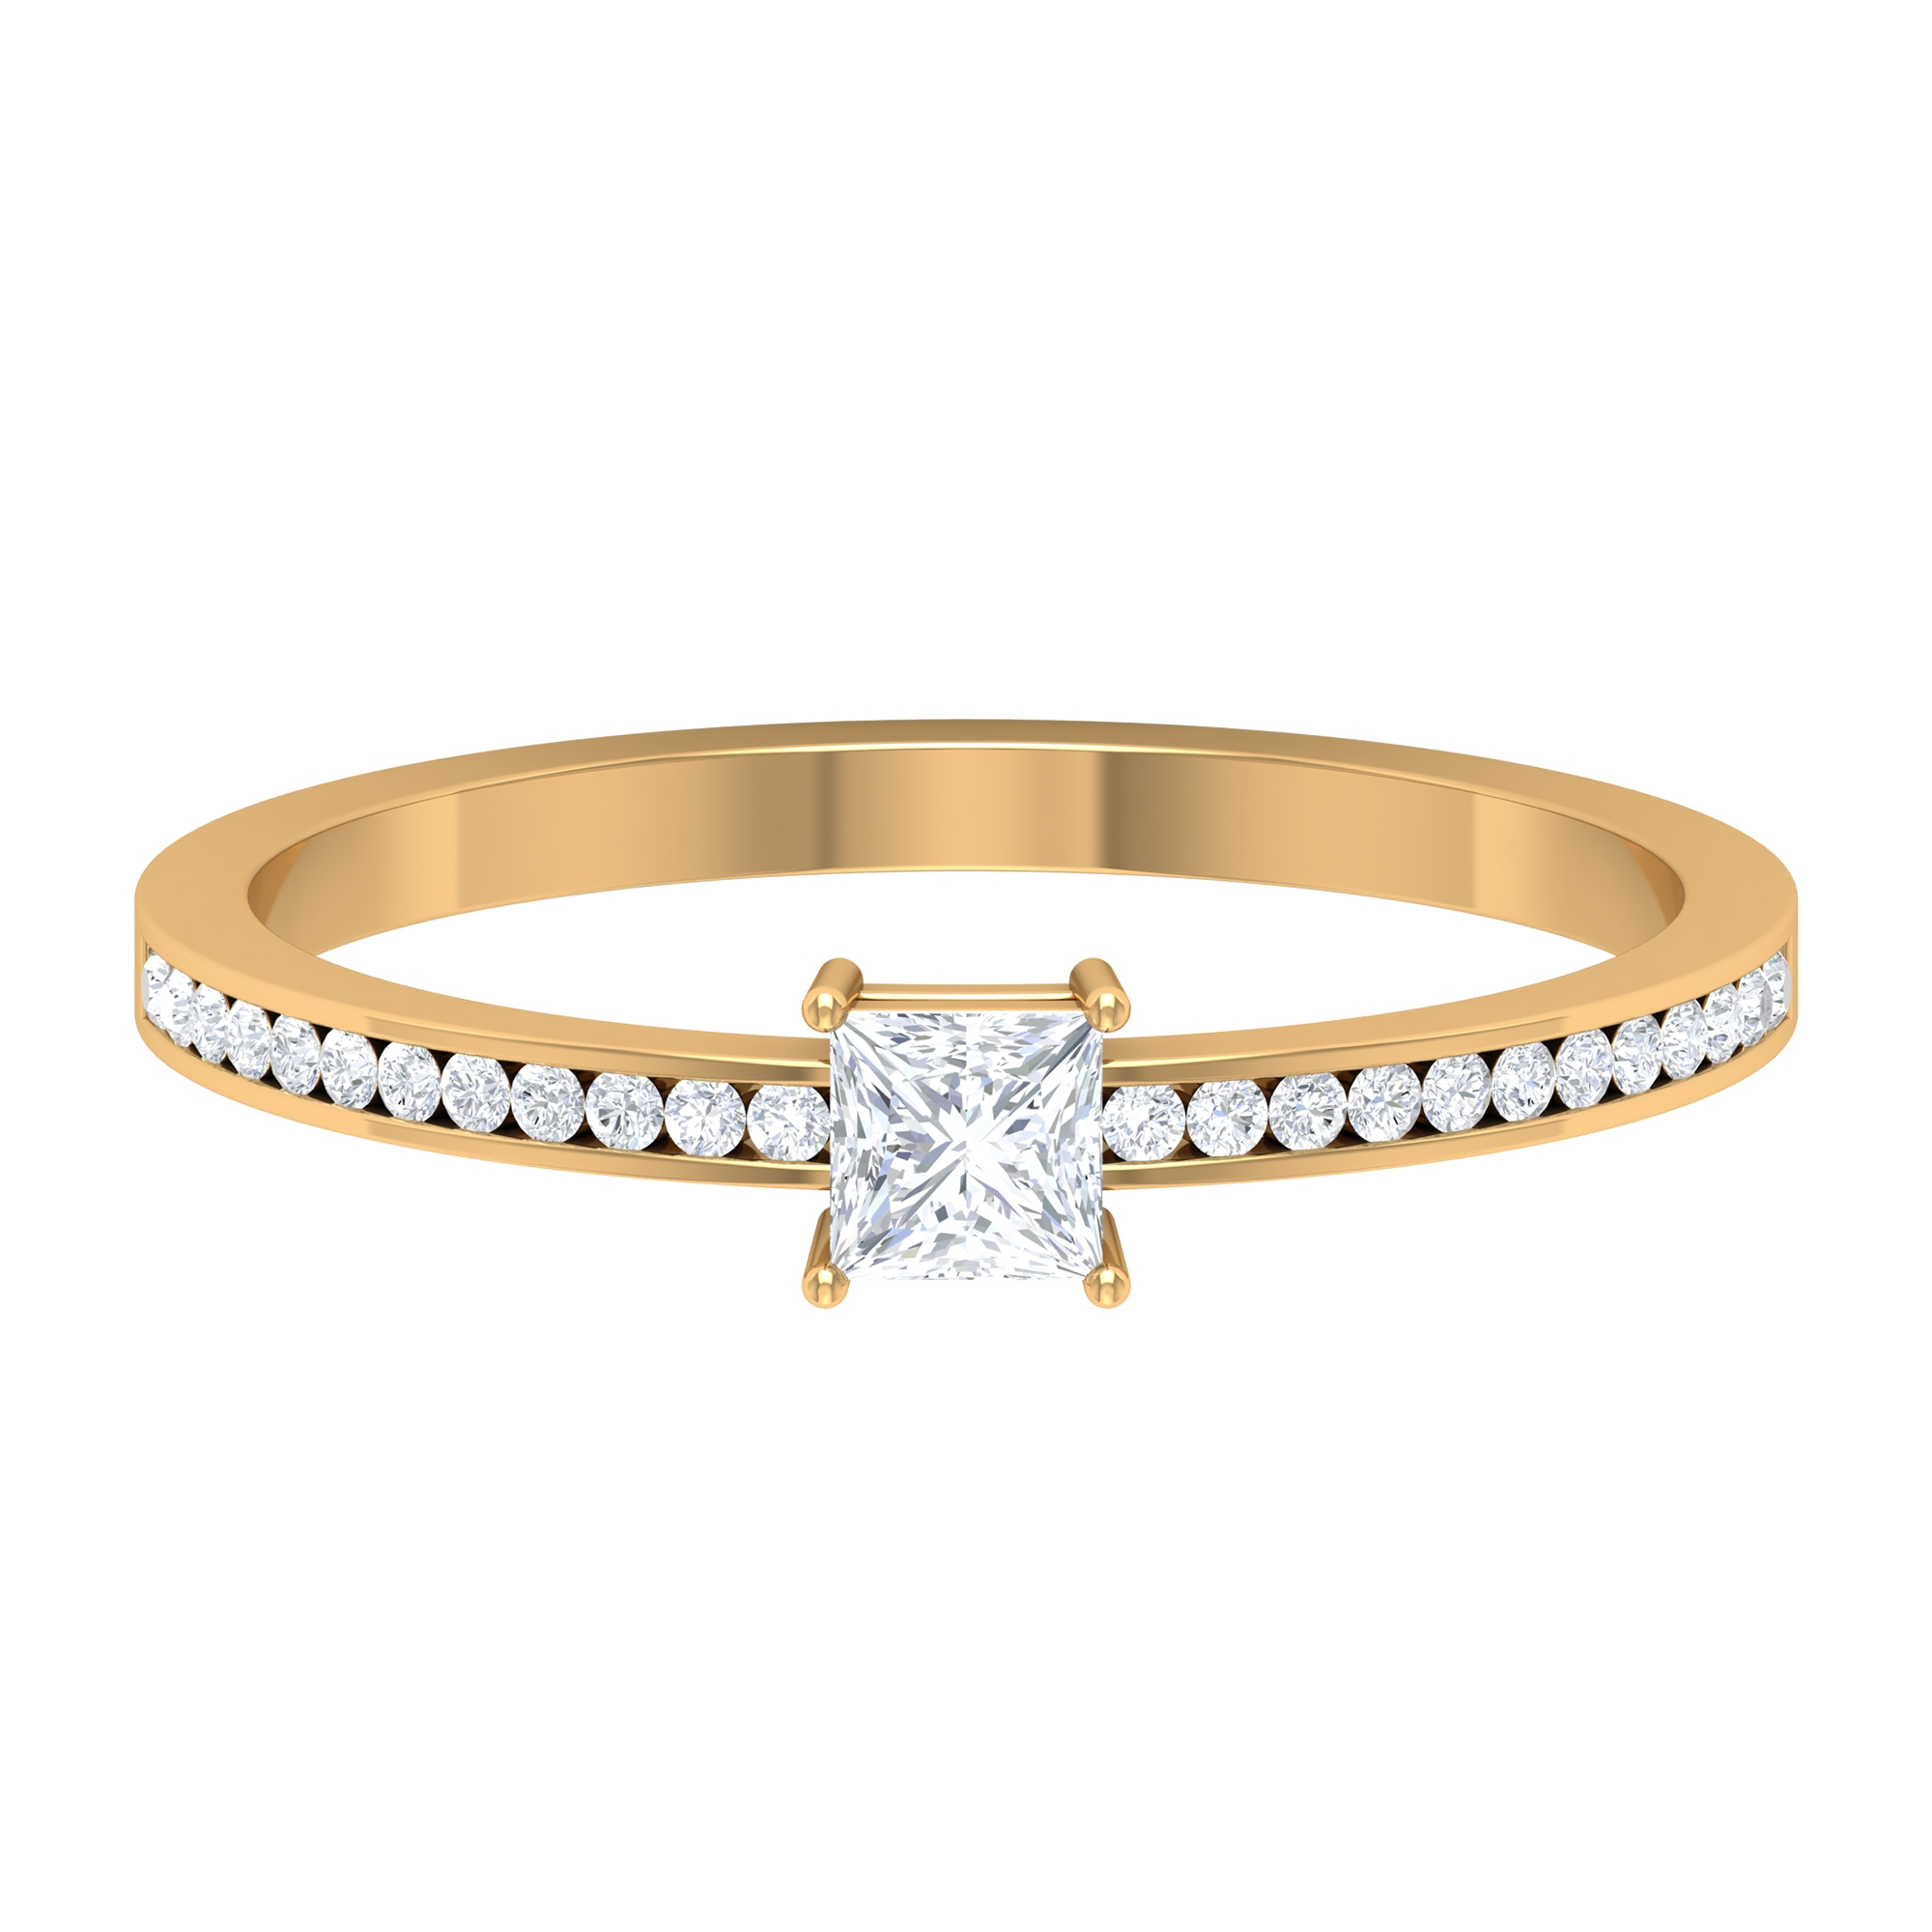 3.3X3.3 MM Princess Cut Solitaire Diamond Ring in 4 Prong Diagonal Setting with Side Stones